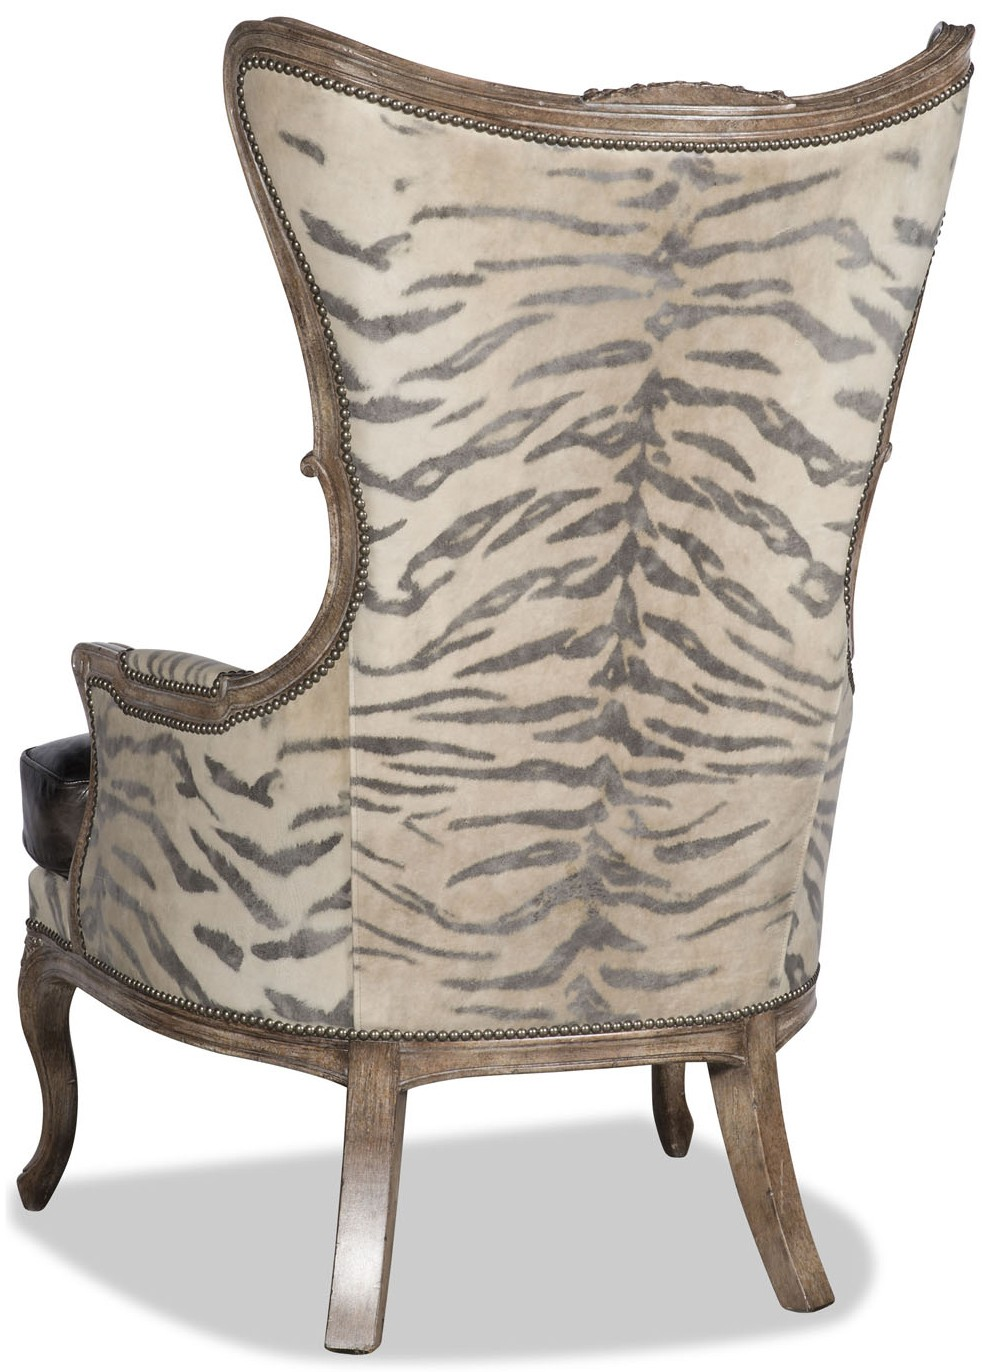 CHAIRS   Leather, Upholstered, Accent Leather And Animal Print Armchair